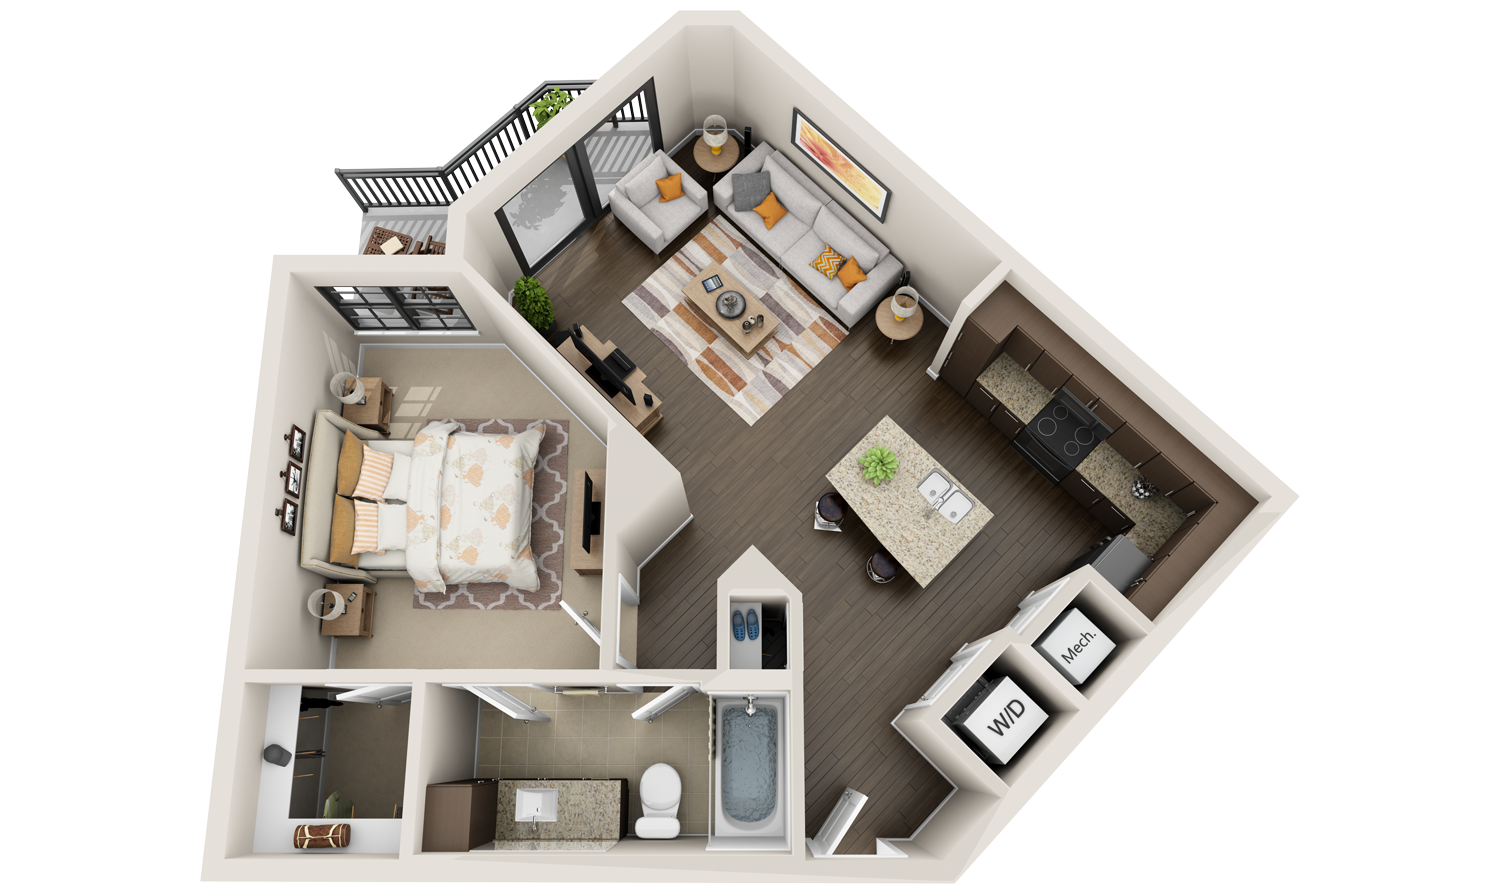 Best 3d floor plans tours for apartments for 3d apartment design